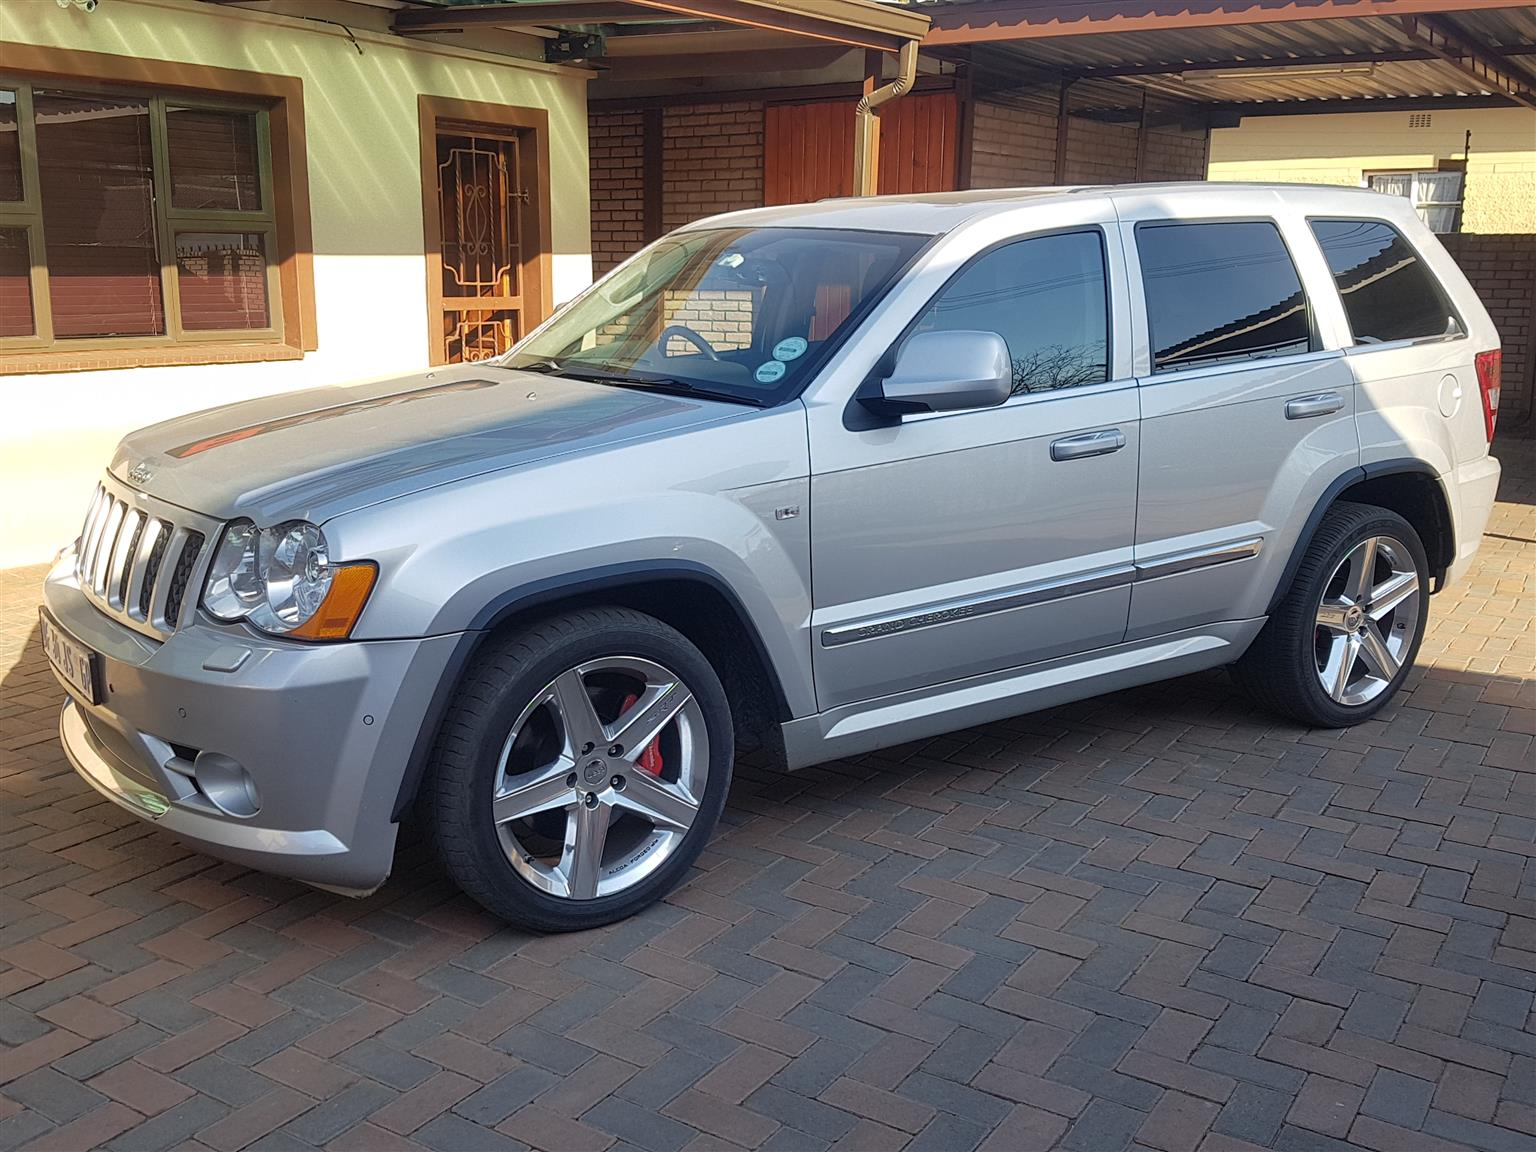 Jeep Cherokee Srt8 For Sale >> 2010 Jeep Grand Cherokee Srt8 Junk Mail